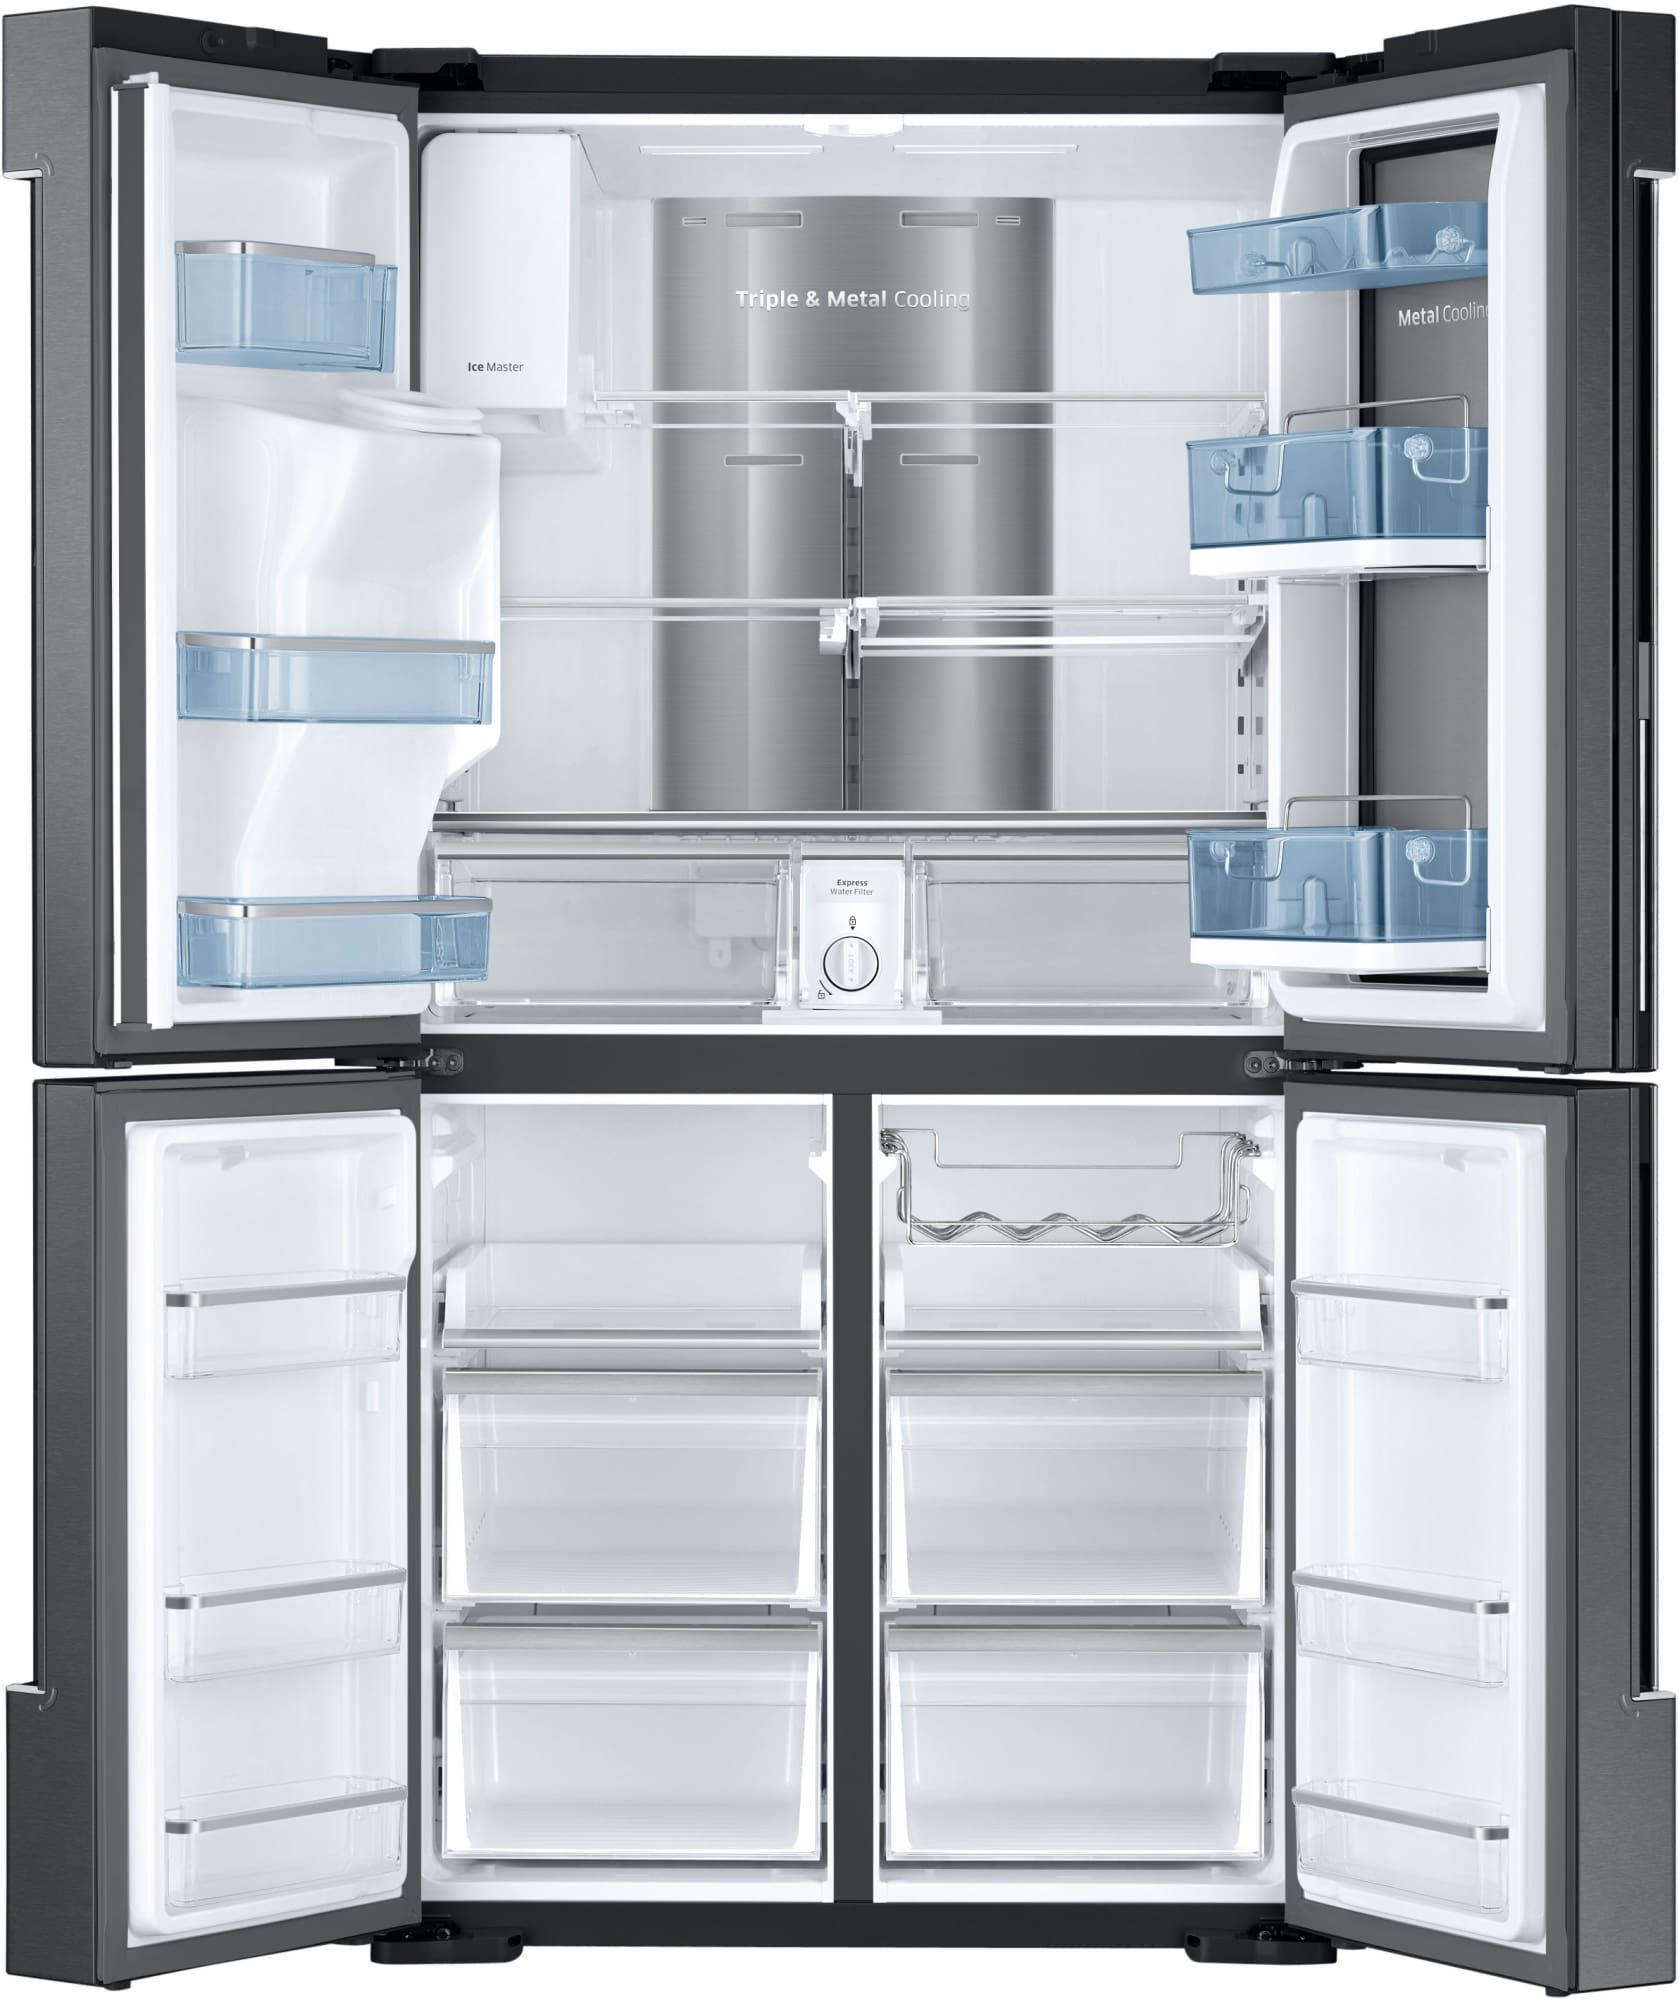 Samsung RF28K9380SG 36 Inch French Door Refrigerator With 28 Cu. Ft.  Capacity, 4